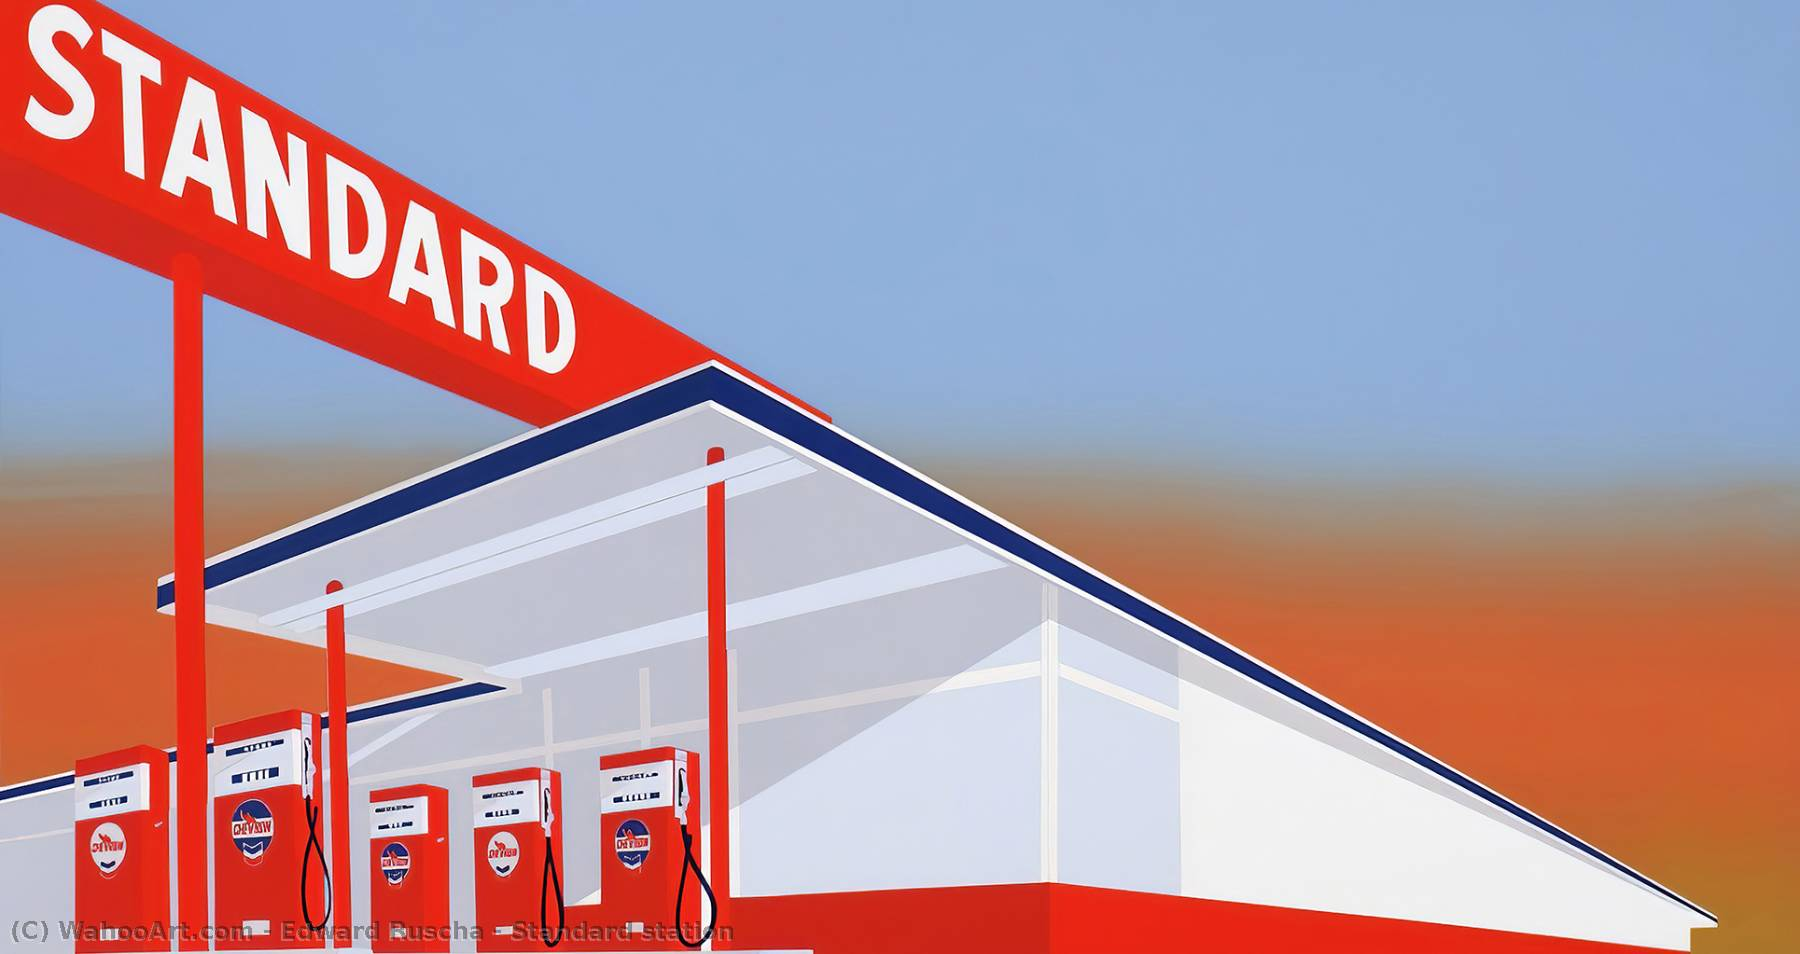 famous painting Standard station of Edward Ruscha